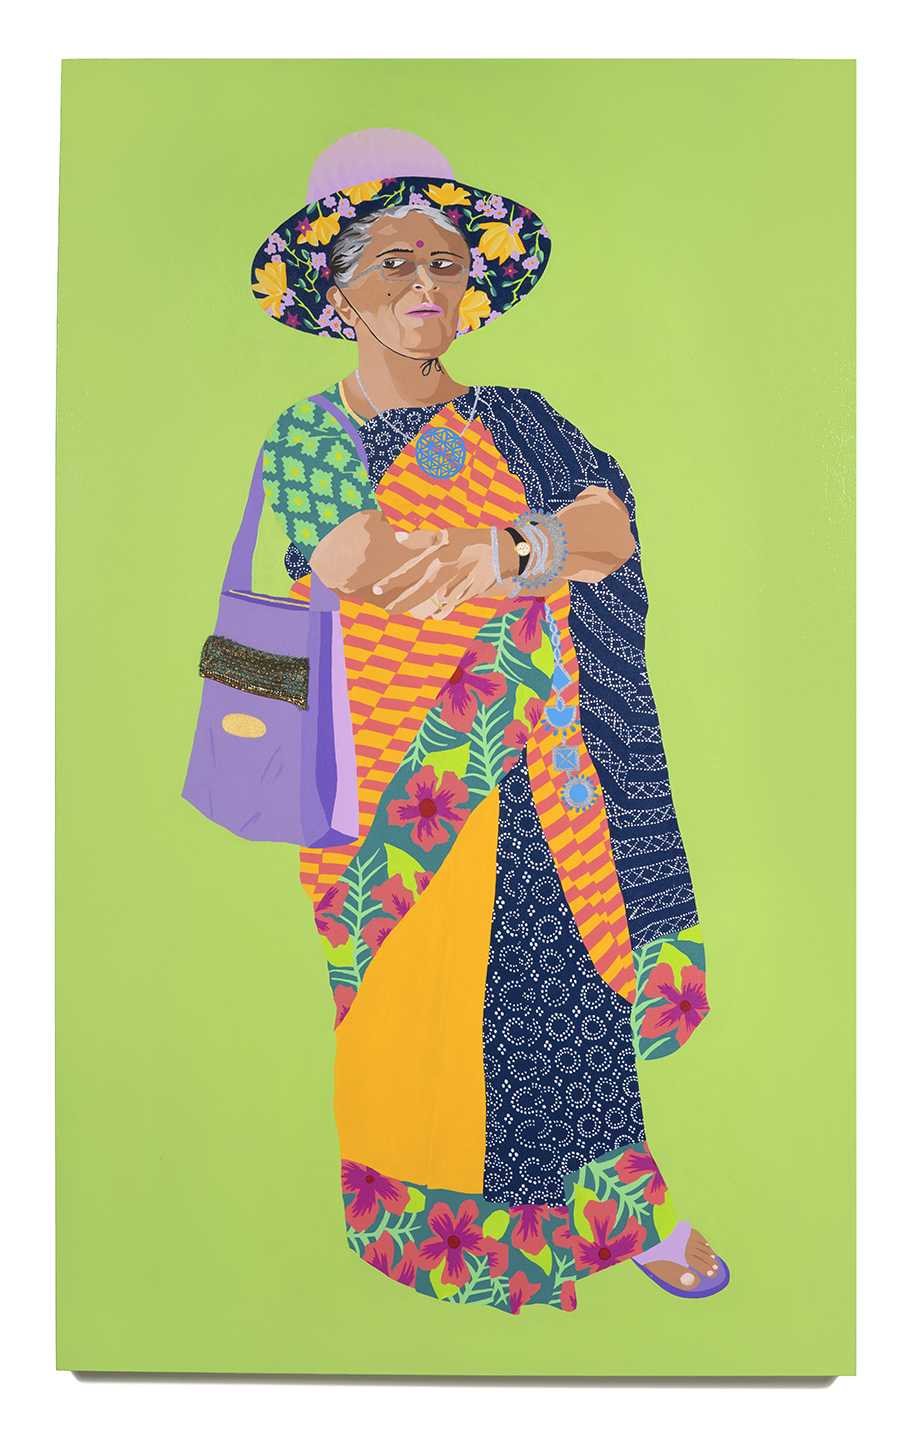 2016. Gunalaxsmi Aunty   (  Upping the Aunty   series)   Acrylic and fabric on canvas   36 in. x 60 in.   Gunalaxsmi Aunty wears a wide-brimed floral lined sun hat with a Hawaii'n bordered striped sari with bhandani pallu. Her antique silver jewellery and flower of life pendant suggest a well-rounded intellectualism.     Private Collection